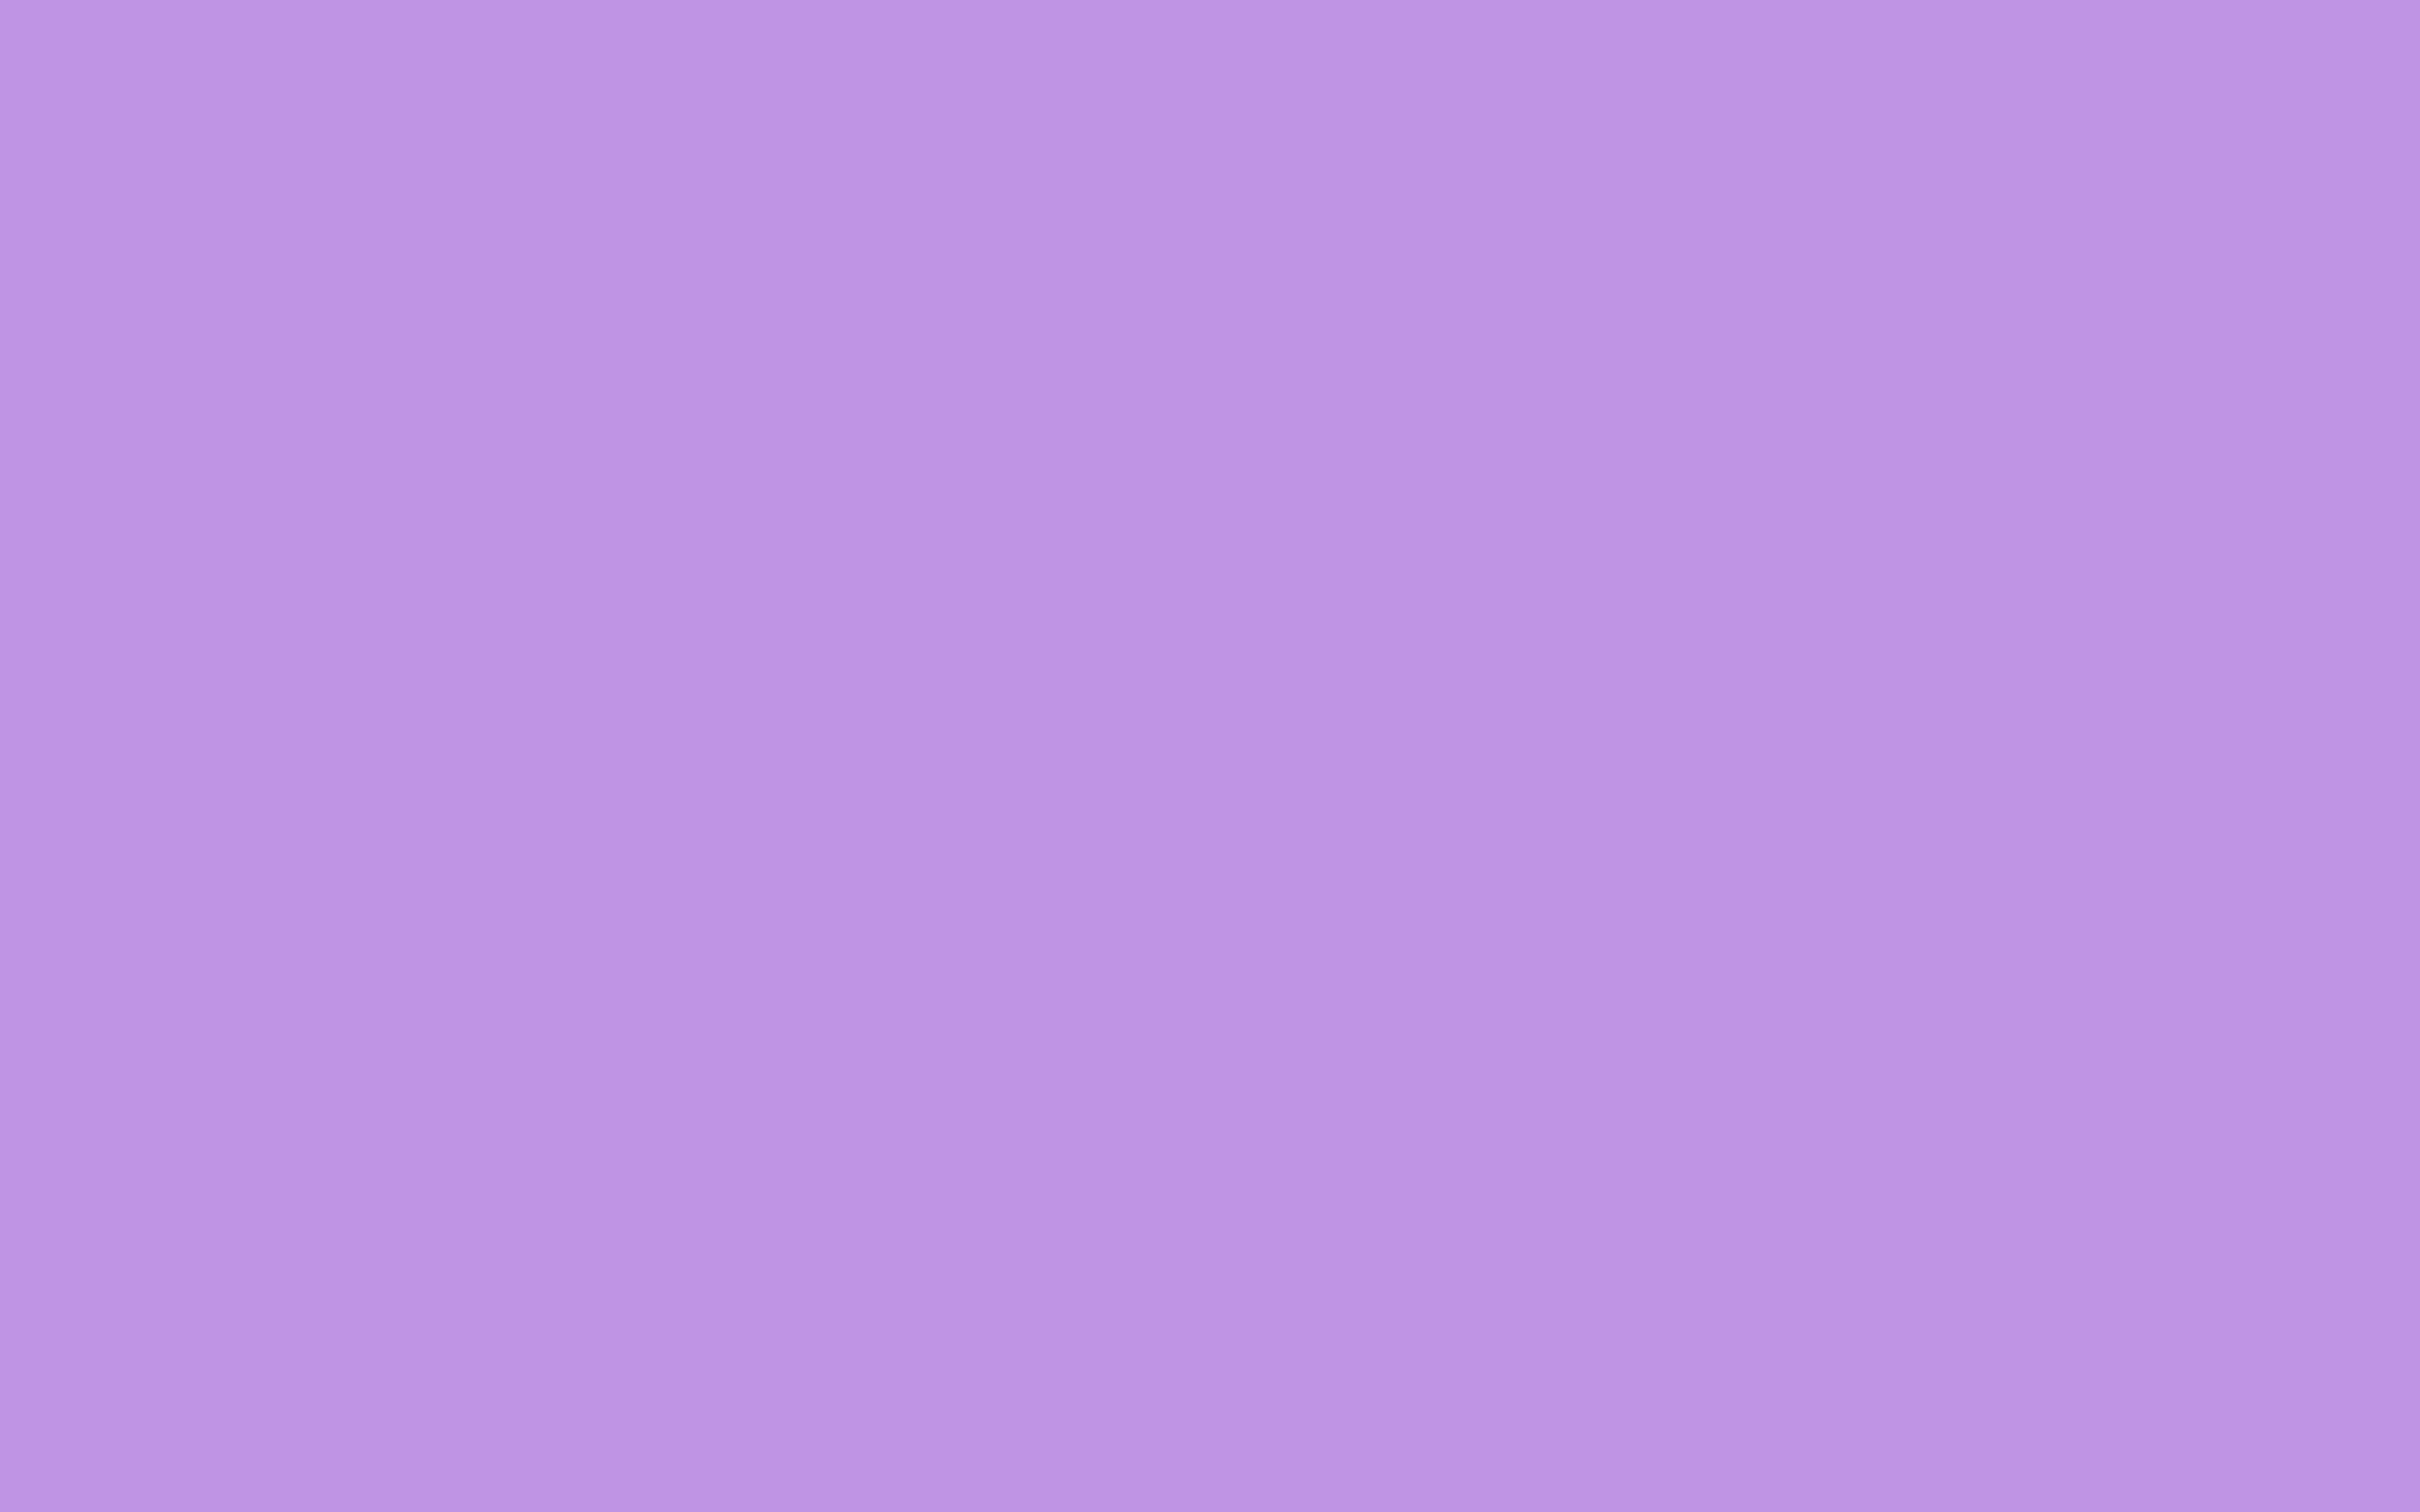 Light Purple Background Hd: HD Solid Color Wallpaper (81+ Images